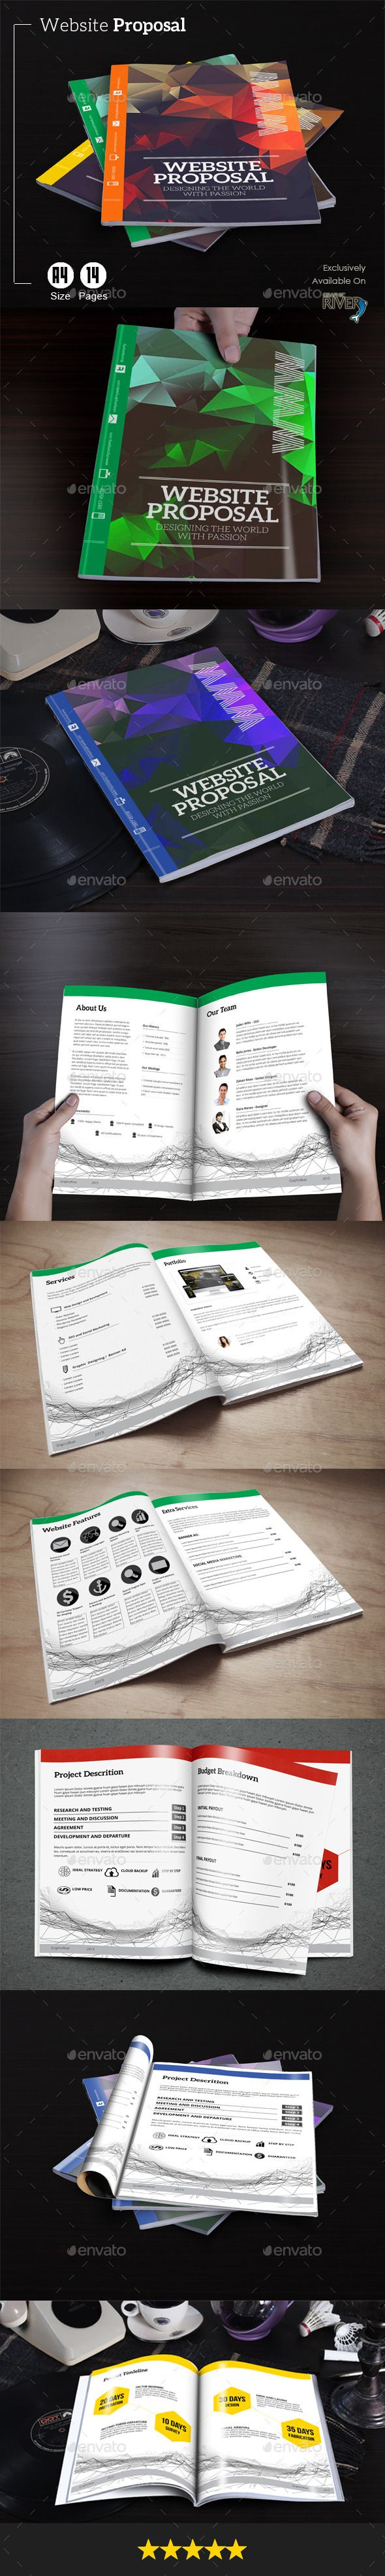 Website Proposal Template #design Download: http://graphicriver.net/item/website-proposal/11824489?ref=ksioks